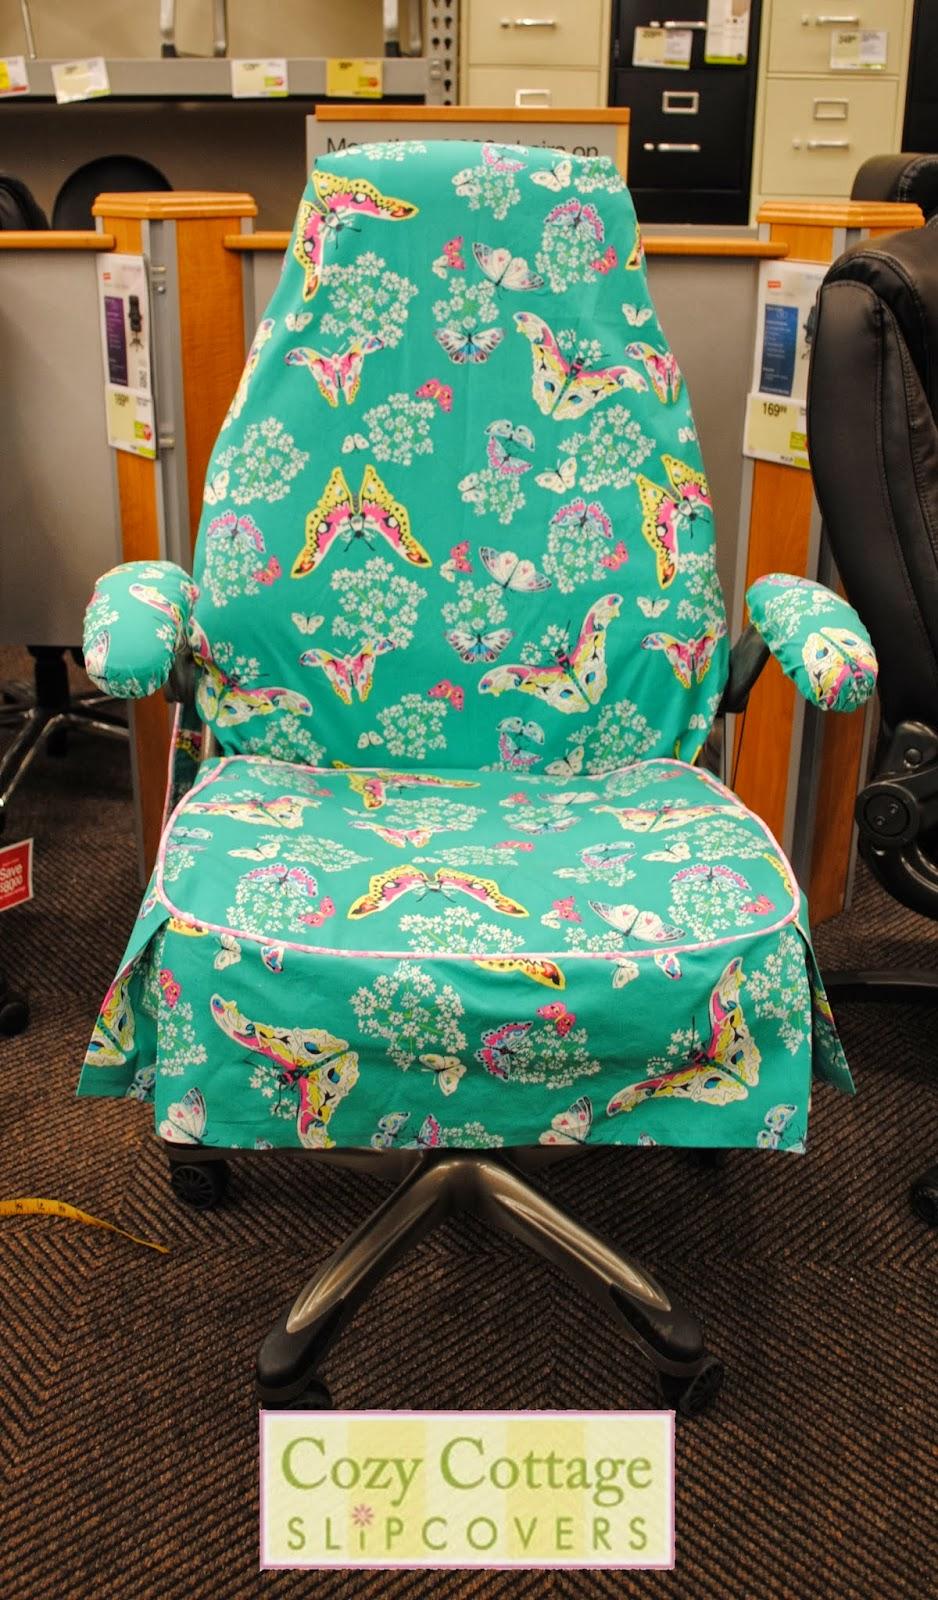 chair arm covers pattern game best buy cozy cottage slipcovers: butterfly office slipcover